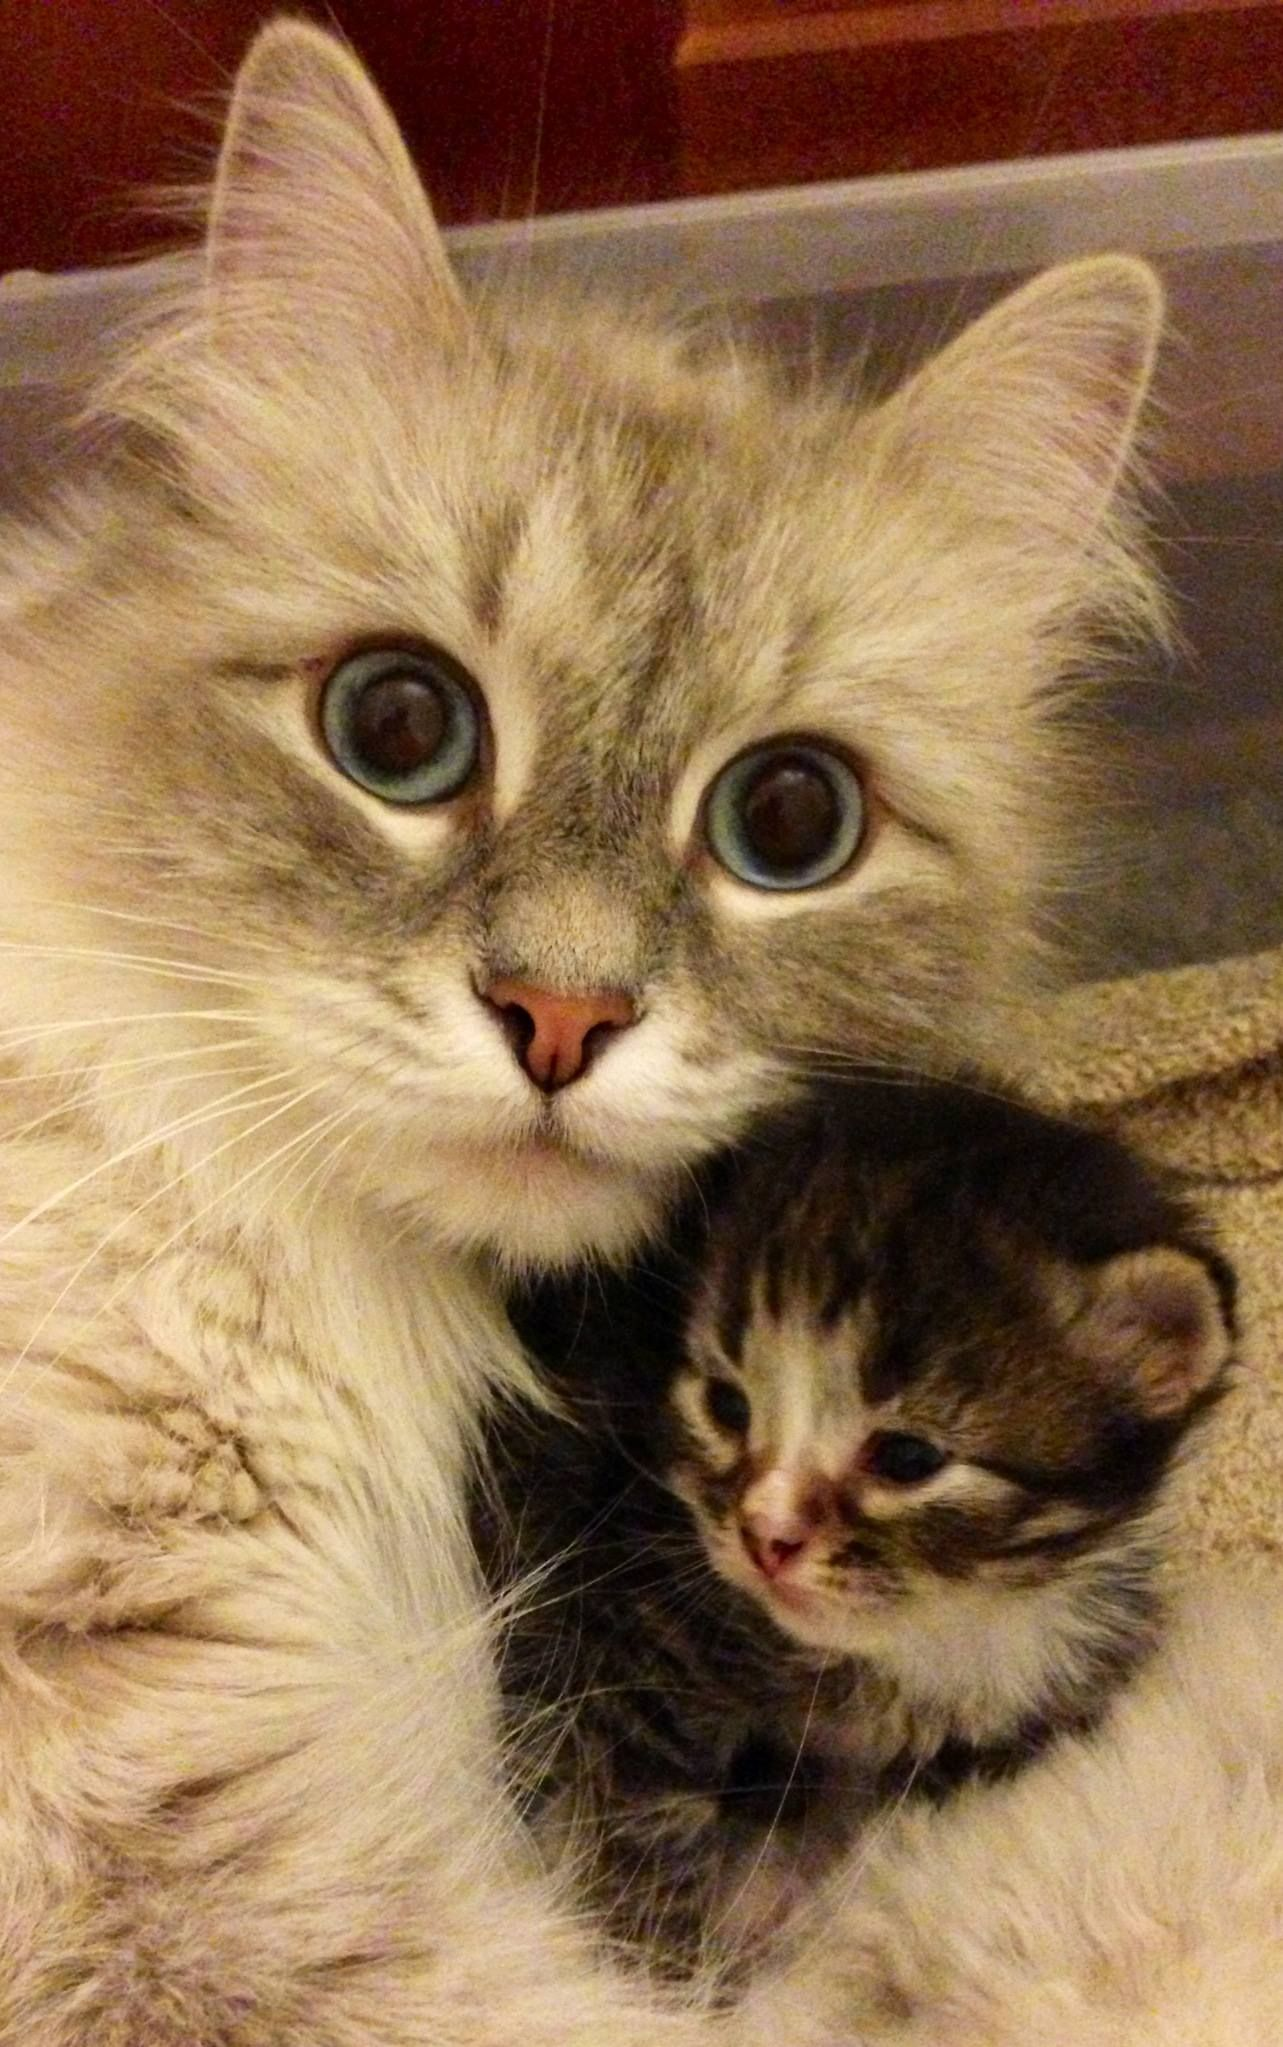 Hypo Allergenic Siberian Cats And Kittens Siberian Cat Kitten Kittens Hypoallergenic C In 2020 Siberian Kittens For Sale Siberian Kittens Siberian Cat Hypoallergenic